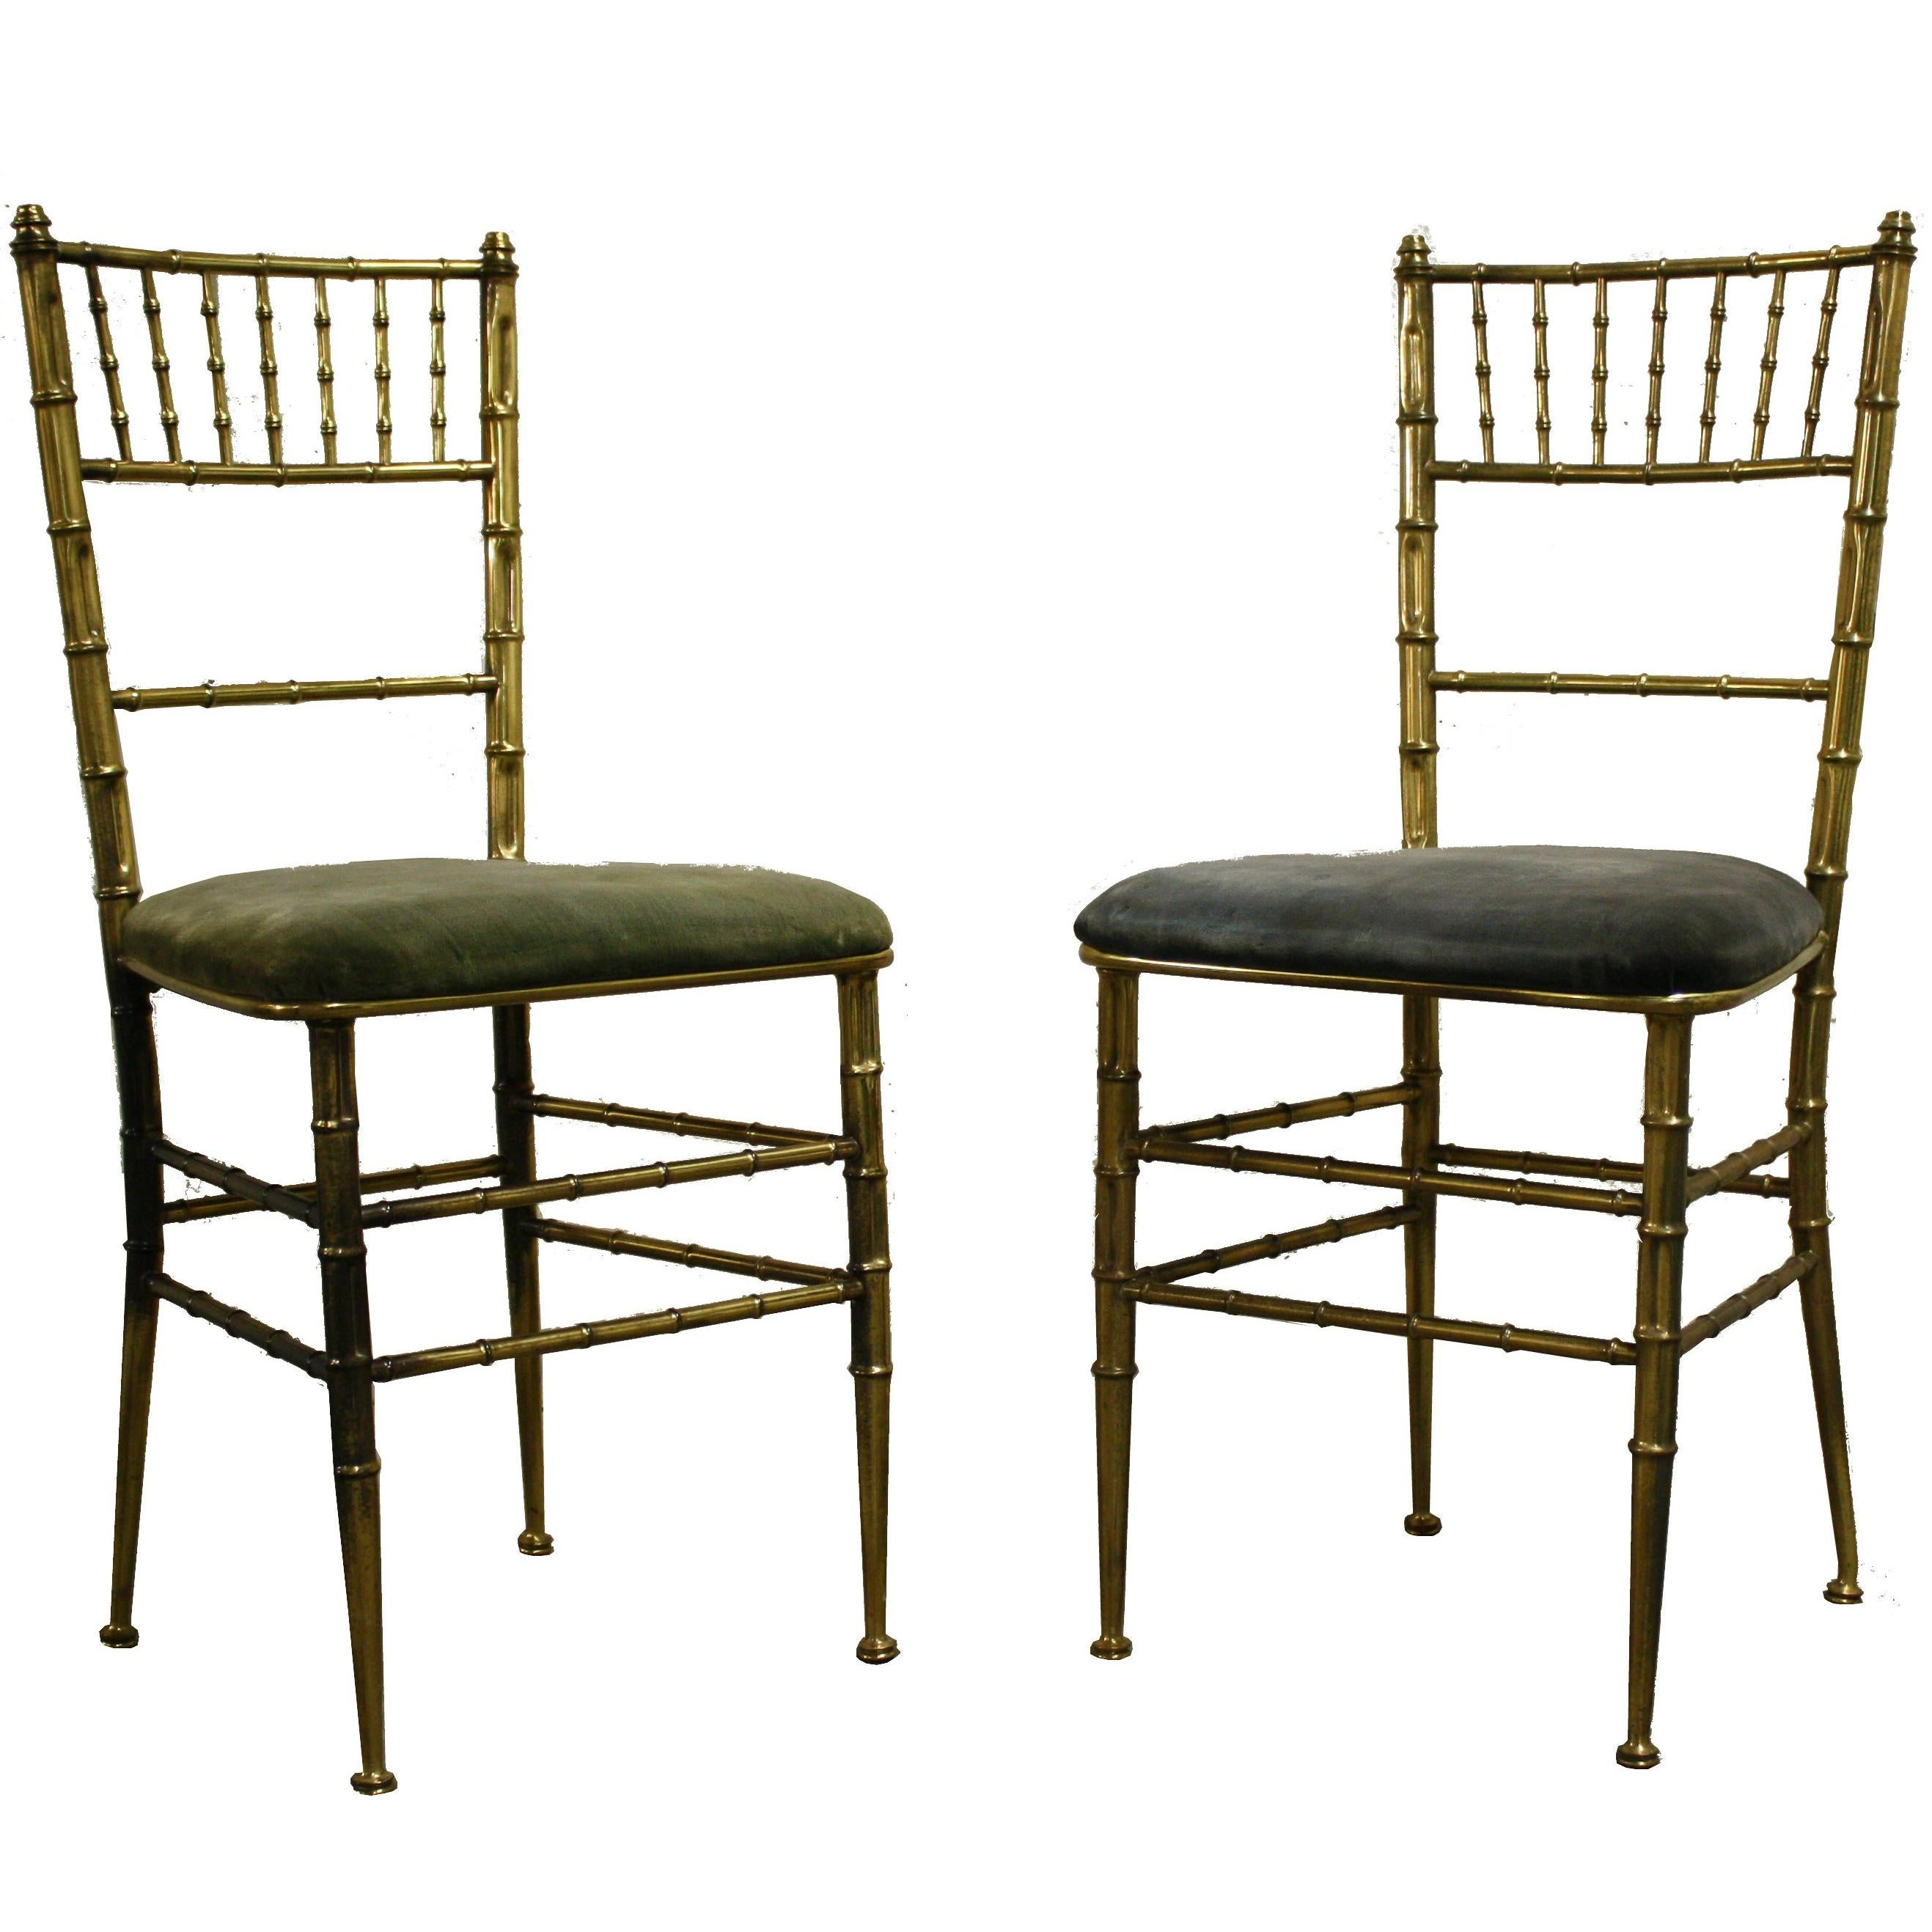 bamboo dining chair modern arm chairs uk pair of brass faux italy 1960s at 1stdibs for sale